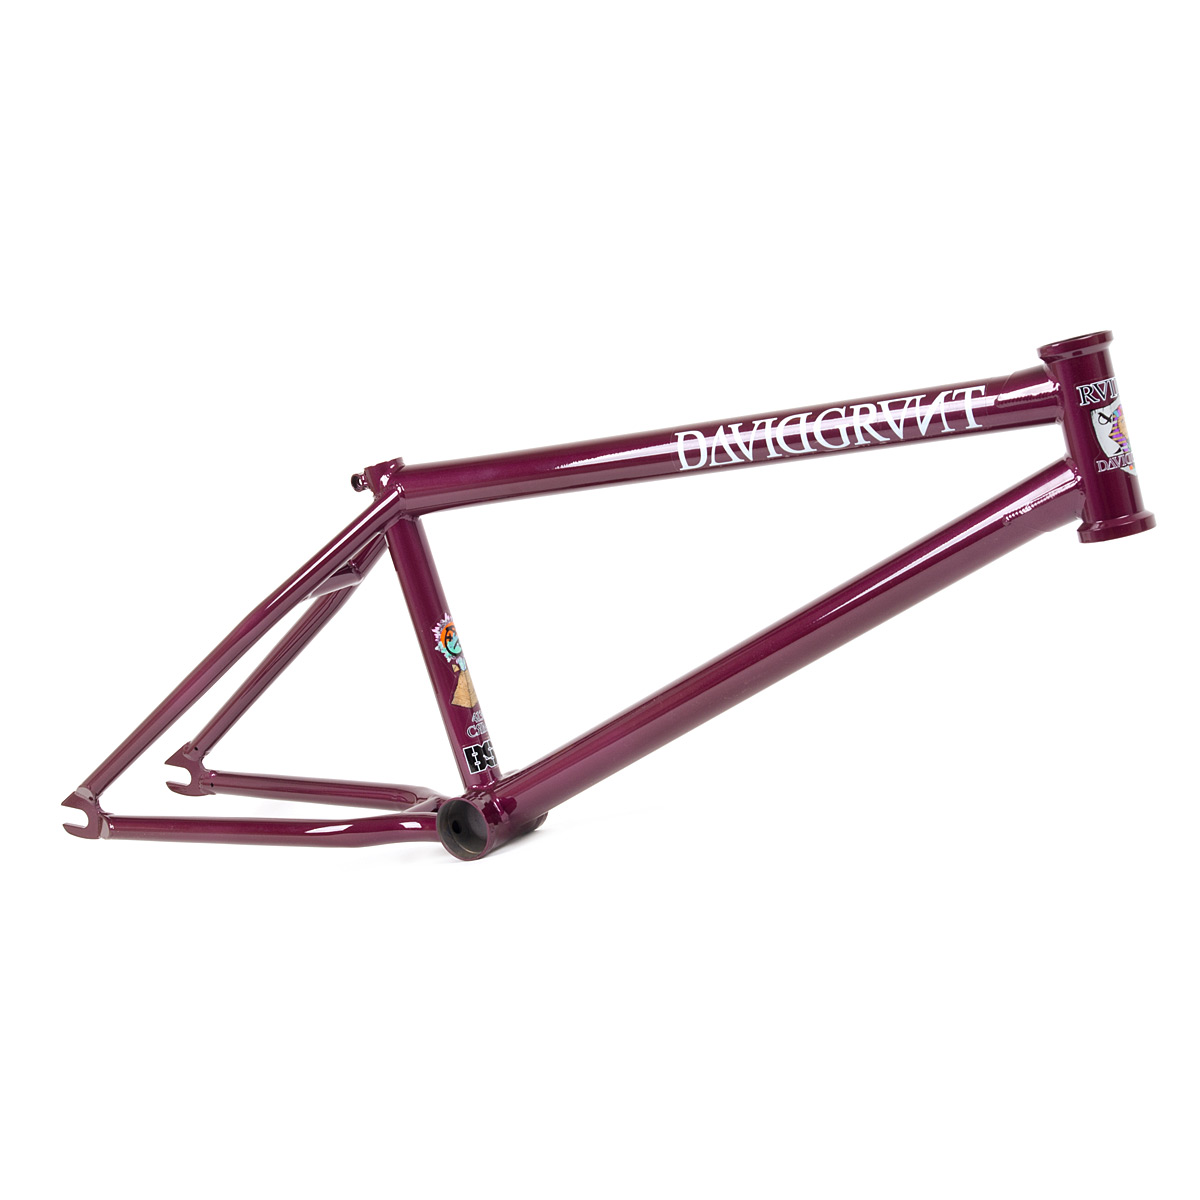 "Rám BMX BSD Raider 20.75"" Space Ghost Purple"